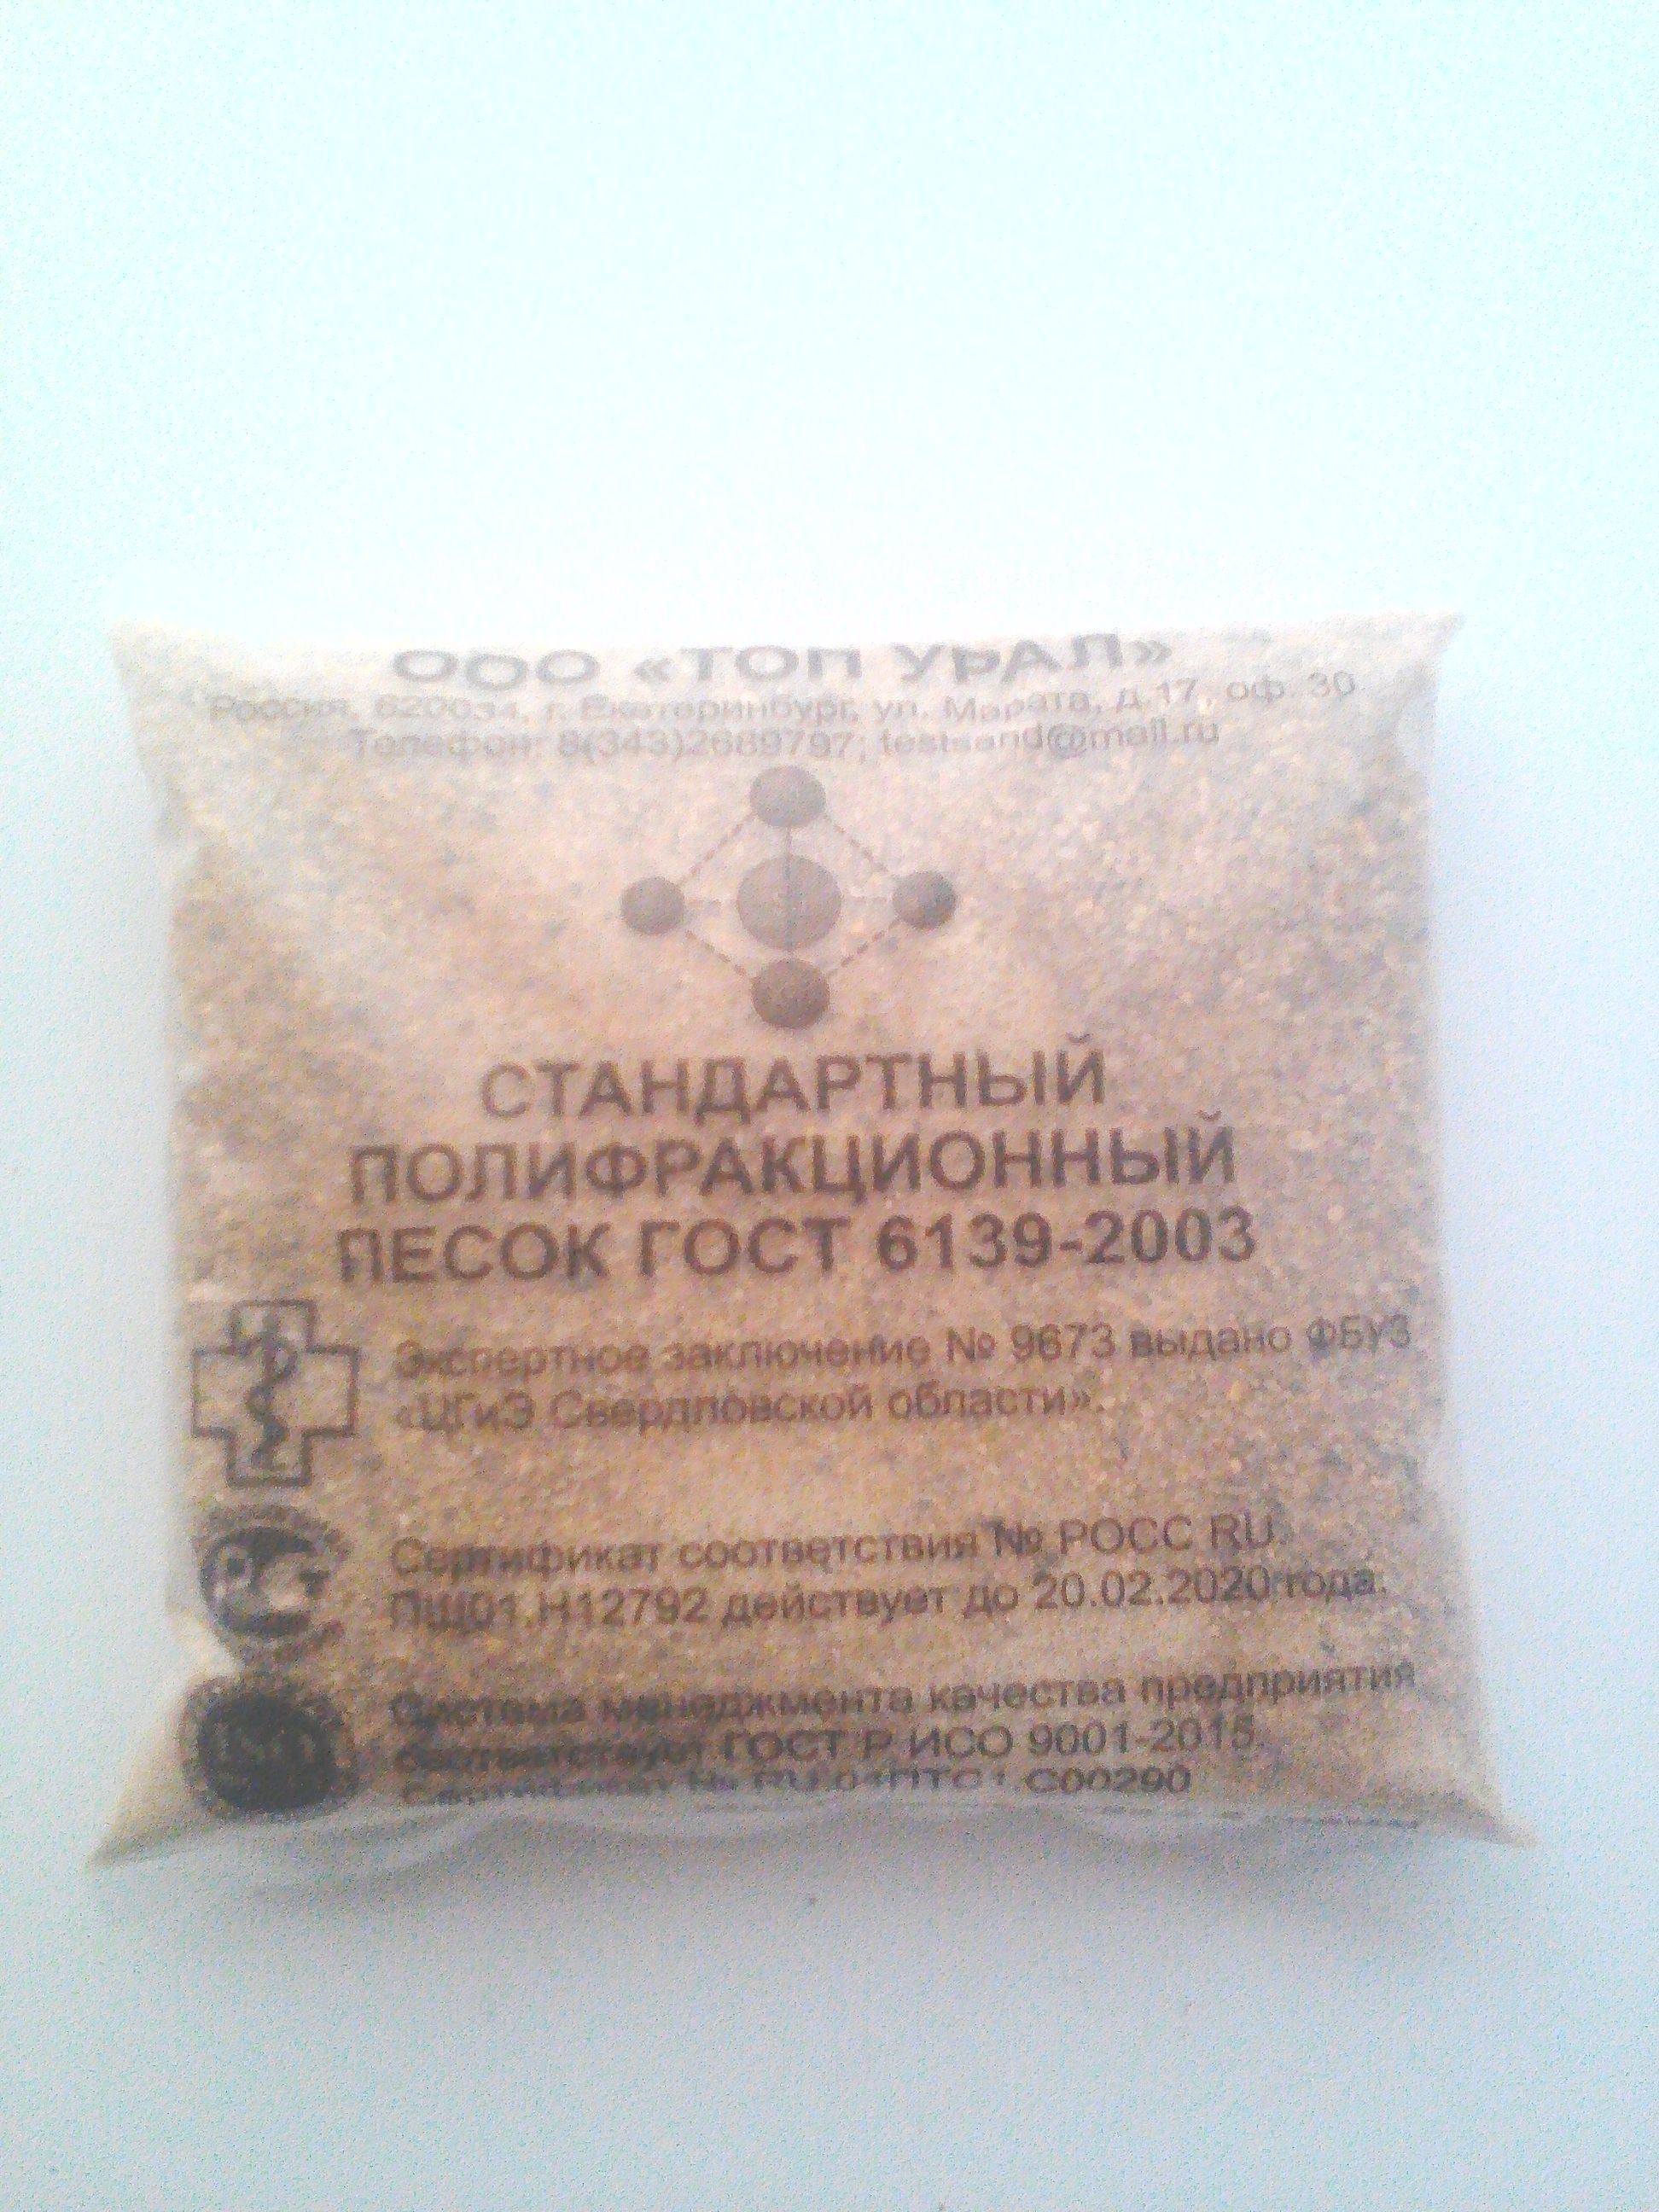 Standard polyfractional sand GOST 6139-2003, 1350 g